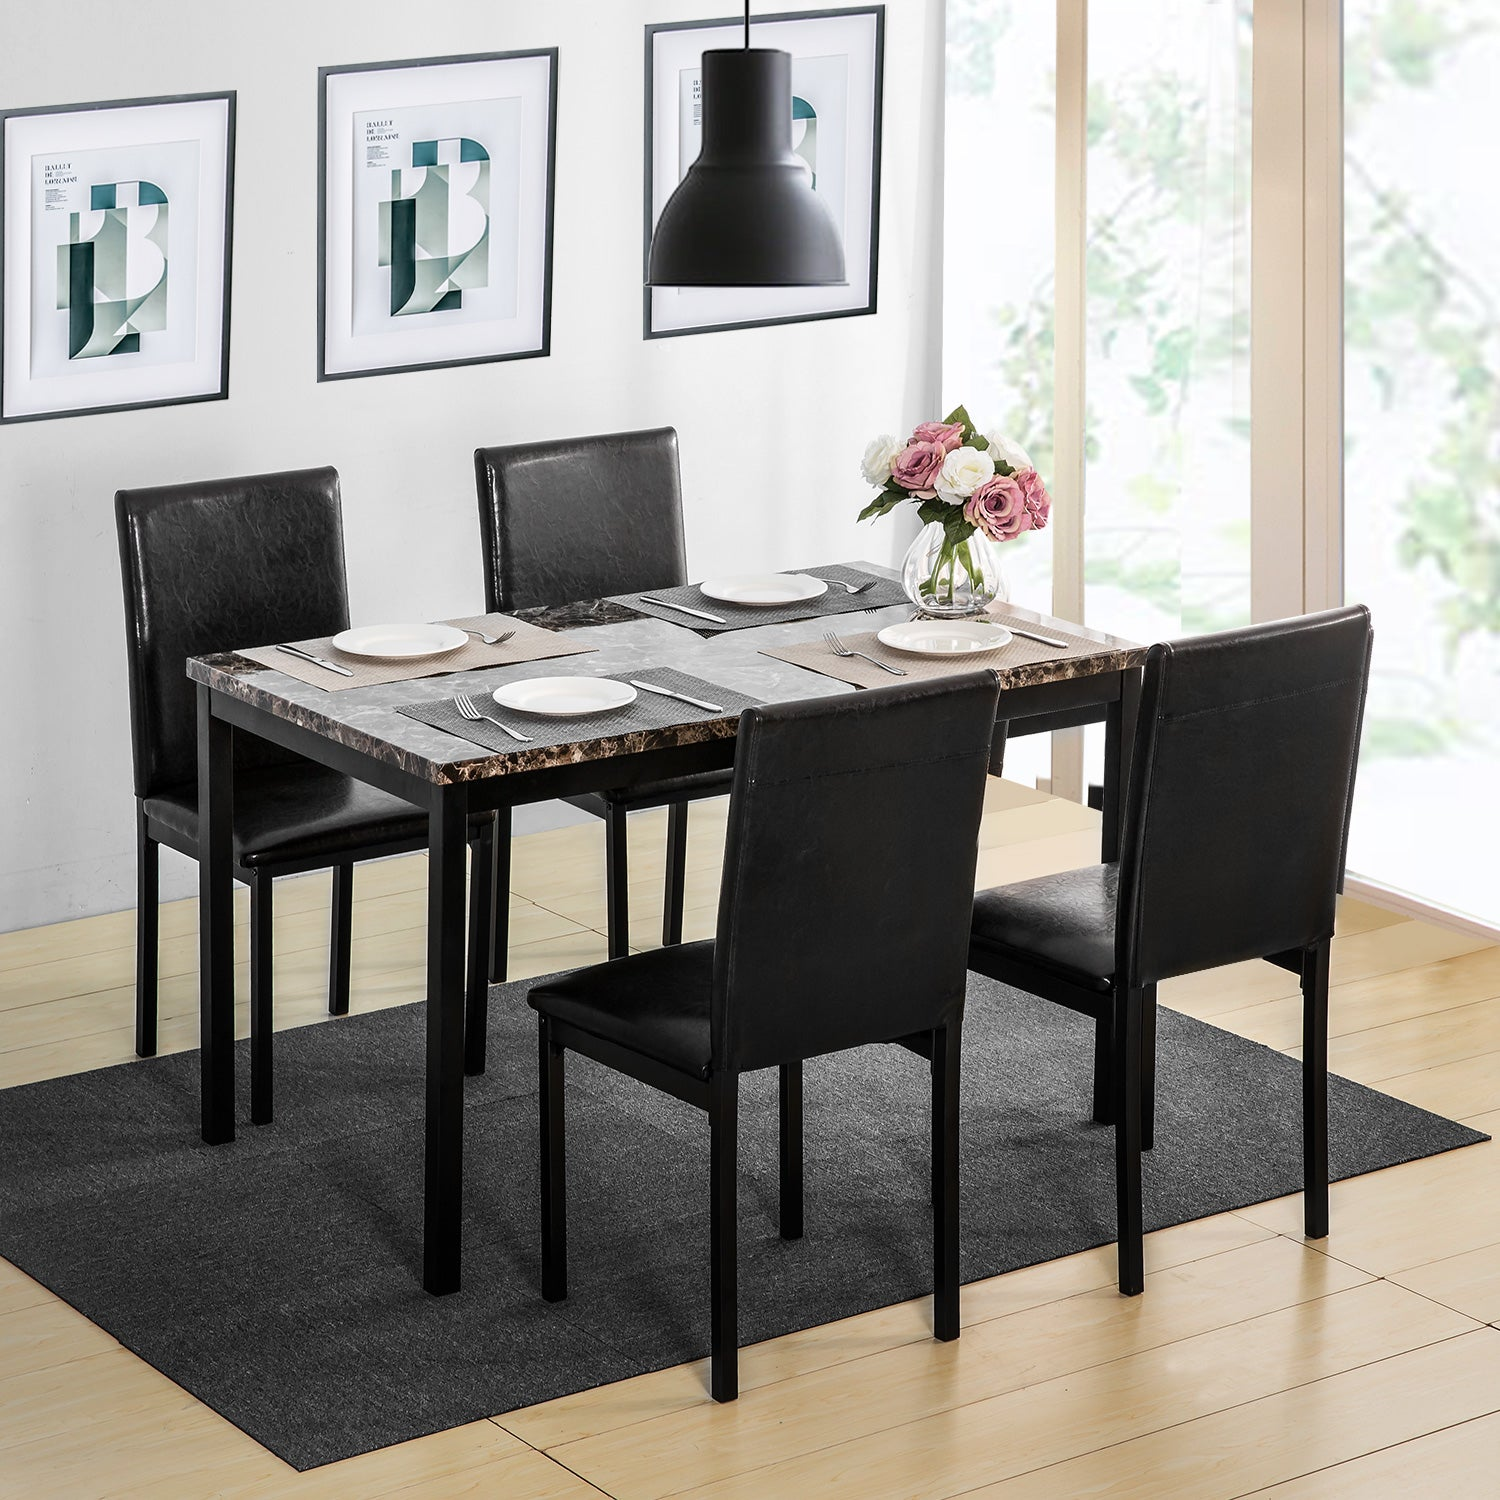 5 Counts - Dining Set Kitchen Table Set Dining Table and 4 Leather Chairs